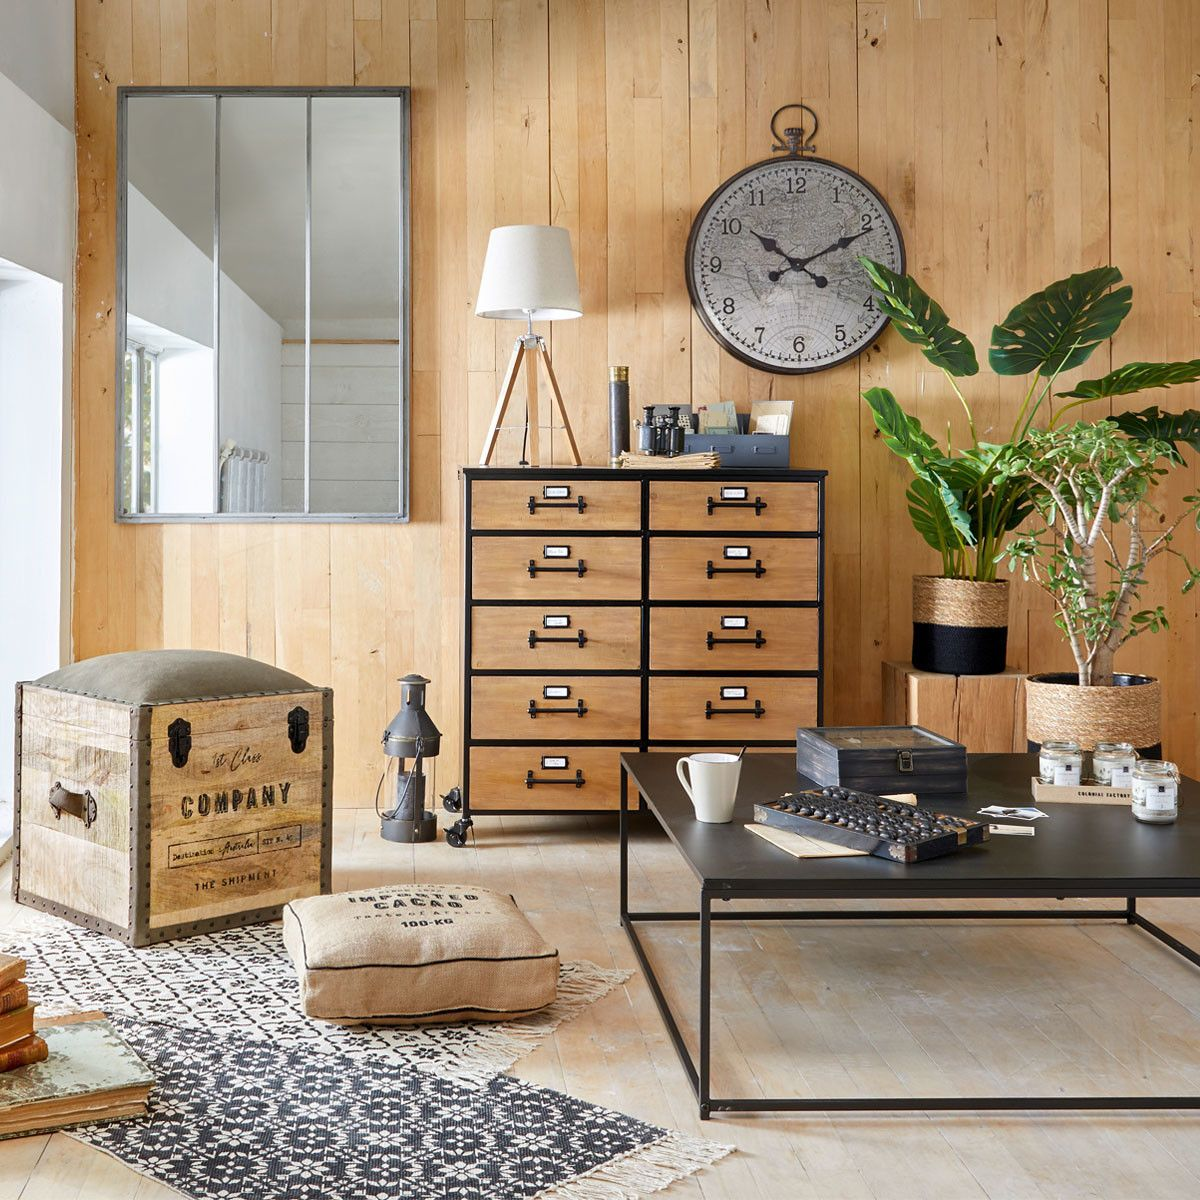 Deja Disponible En Magasin Venez Decouvrir La Nouvelle Collection Thecolonialfactory Atmosphera Atmospheredeco Deco Decorat Home Decor Home Furniture